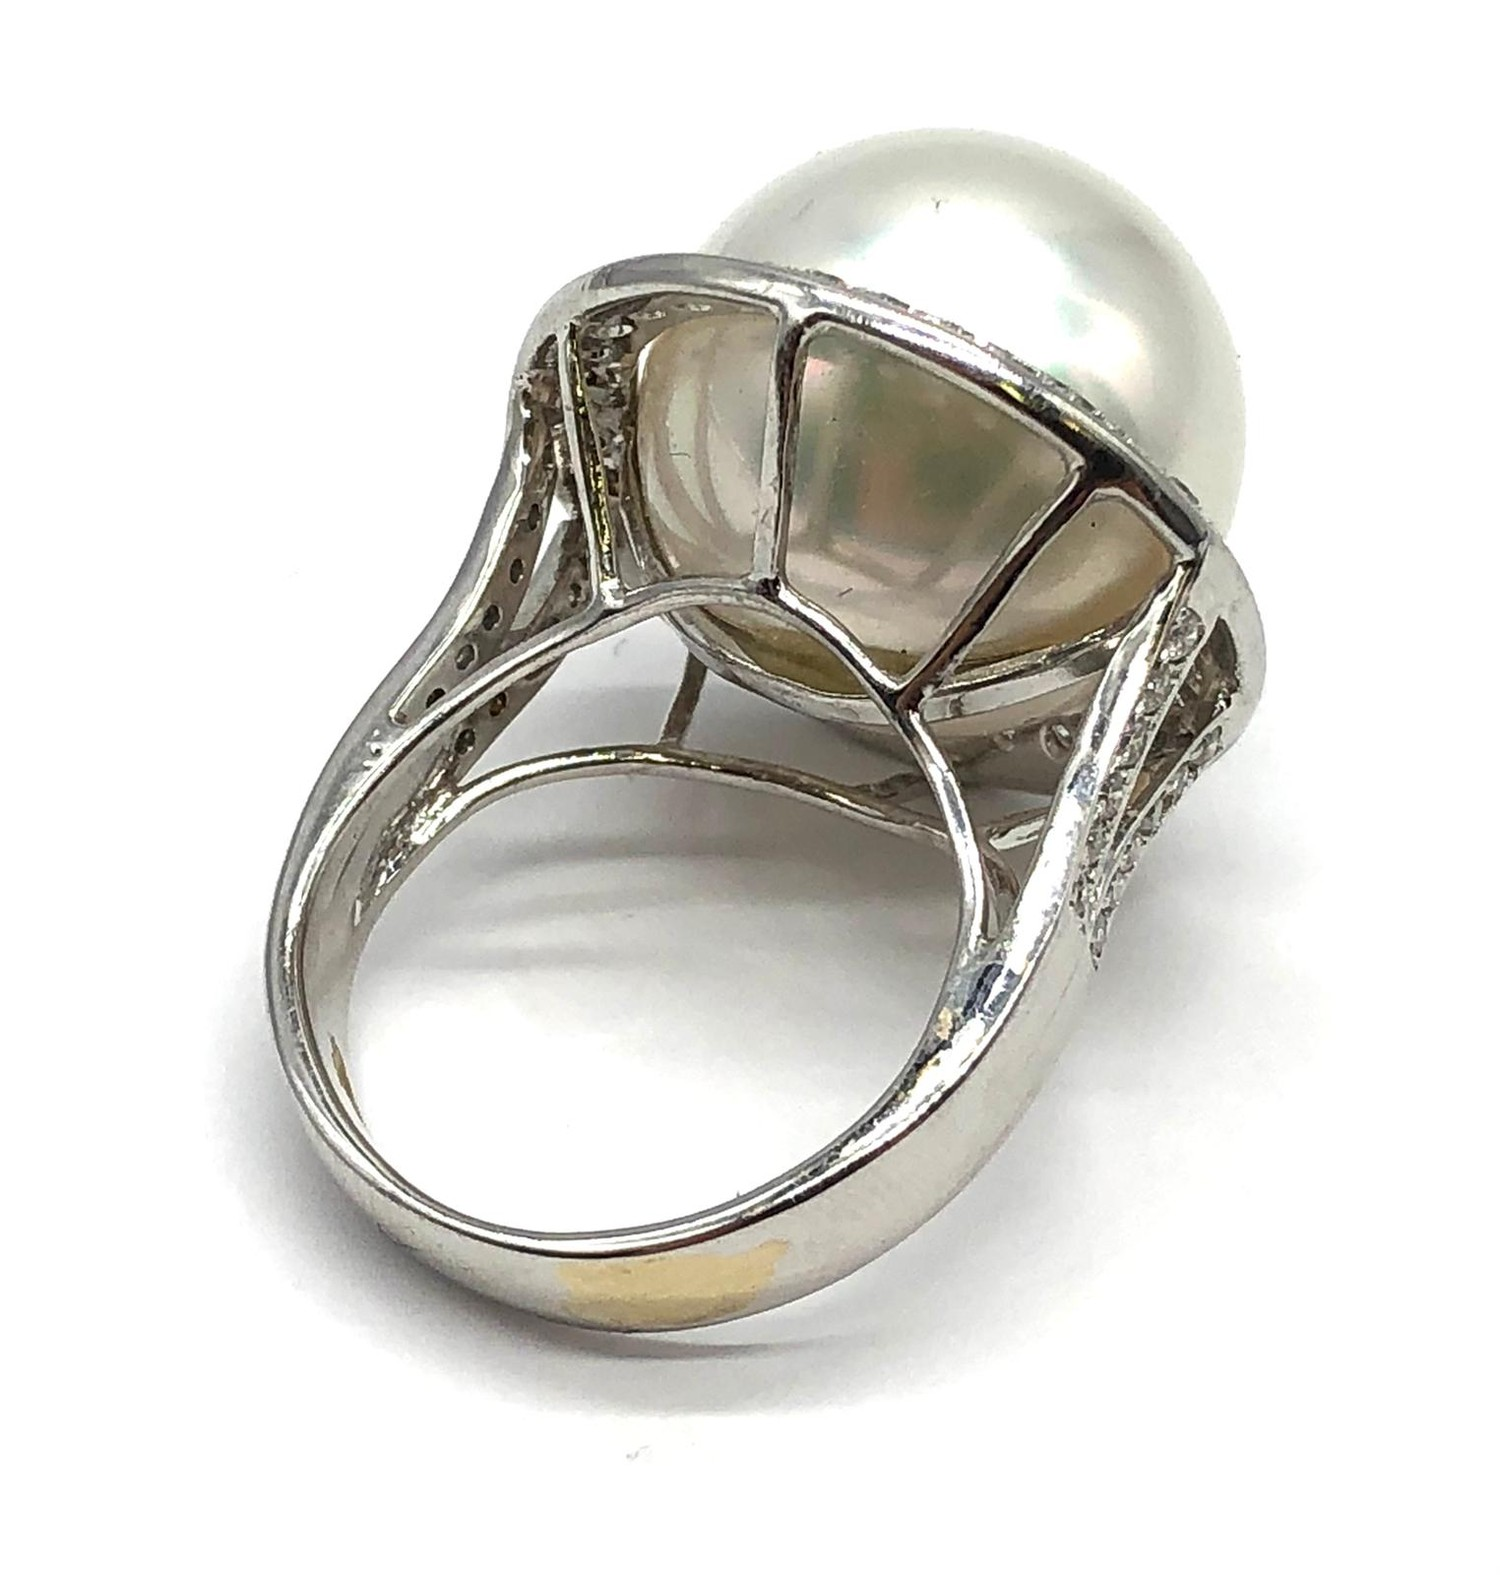 A large Kimoto pearl (17mm diameter) ring set in diamond and 18ct white gold ring, weight 14.43g and - Image 6 of 7